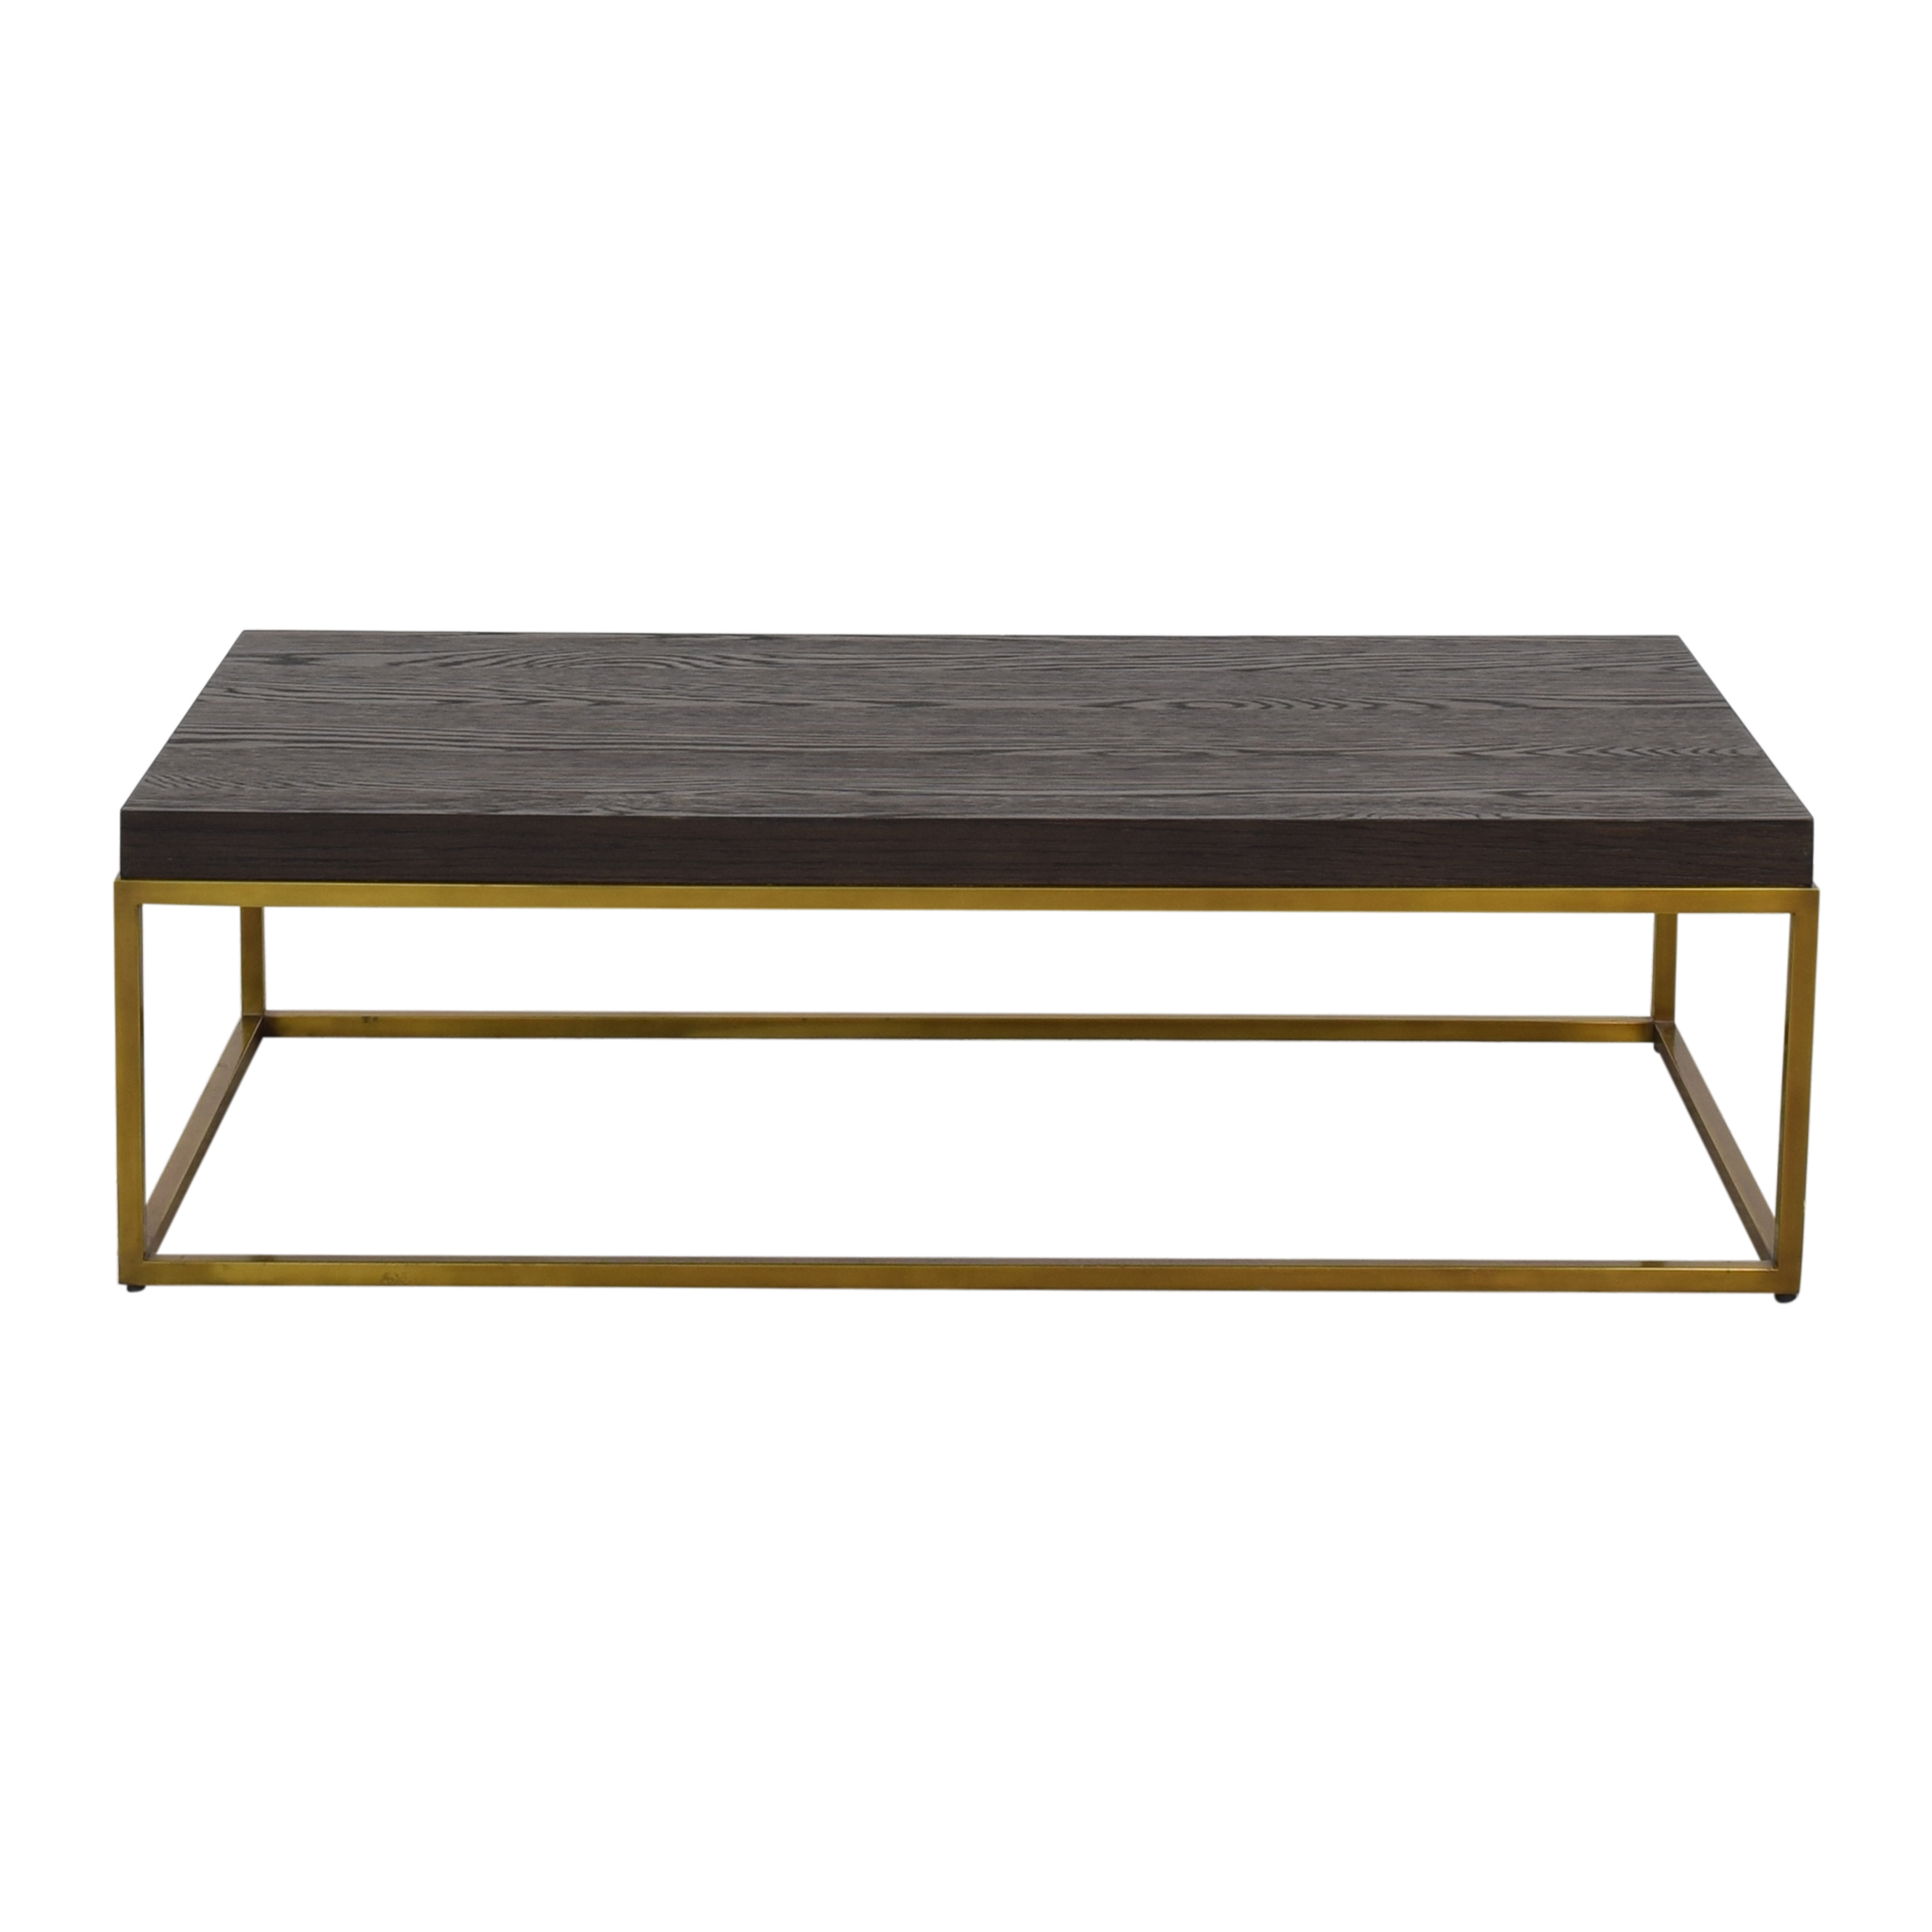 Restoration Hardware Restoration Hardware Nicholas Oak Coffee Table ct